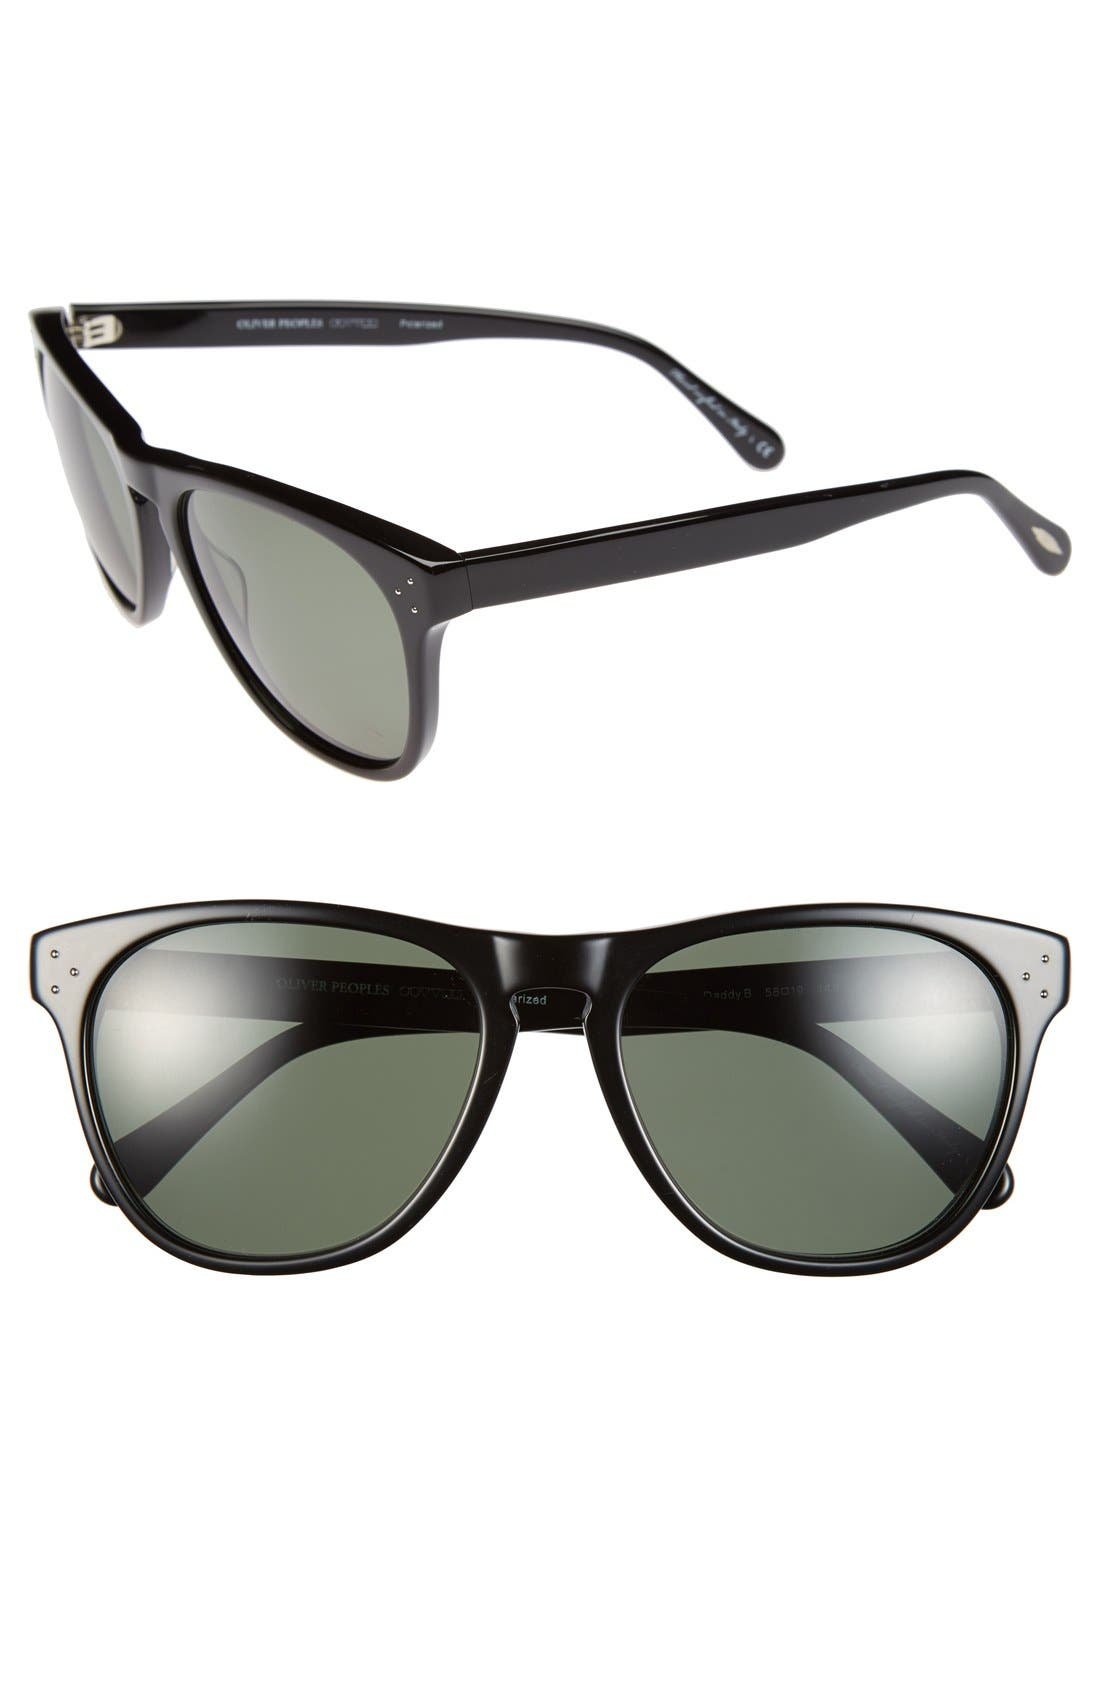 Main Image - Oliver Peoples 'Daddy B' 58mm Polarized Sunglasses